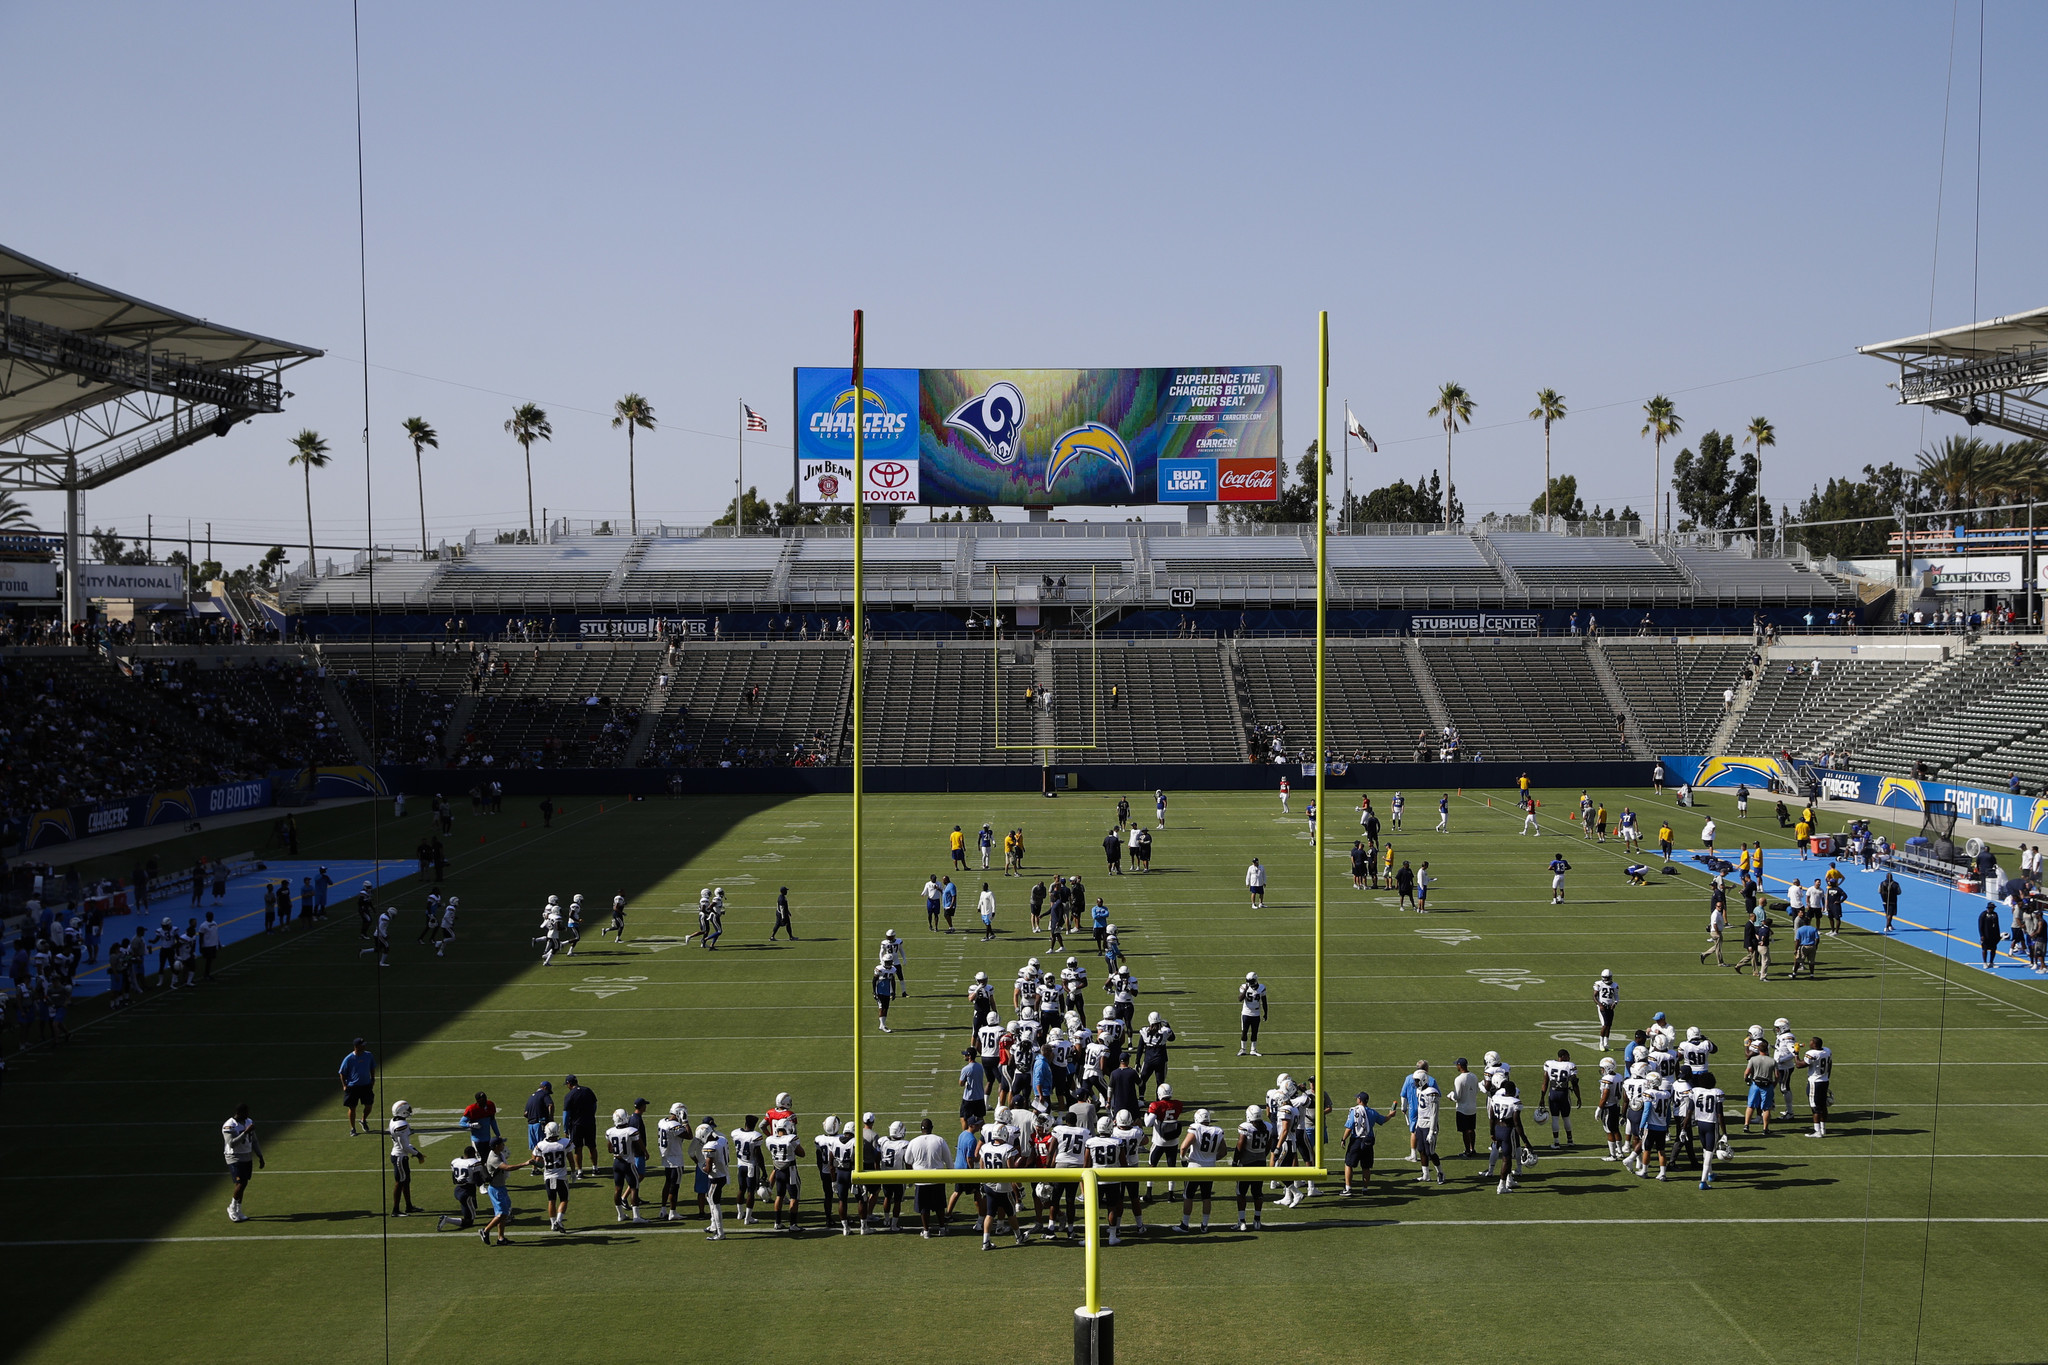 Chargers Spending Tens Of Millions To Make New Home Nfl